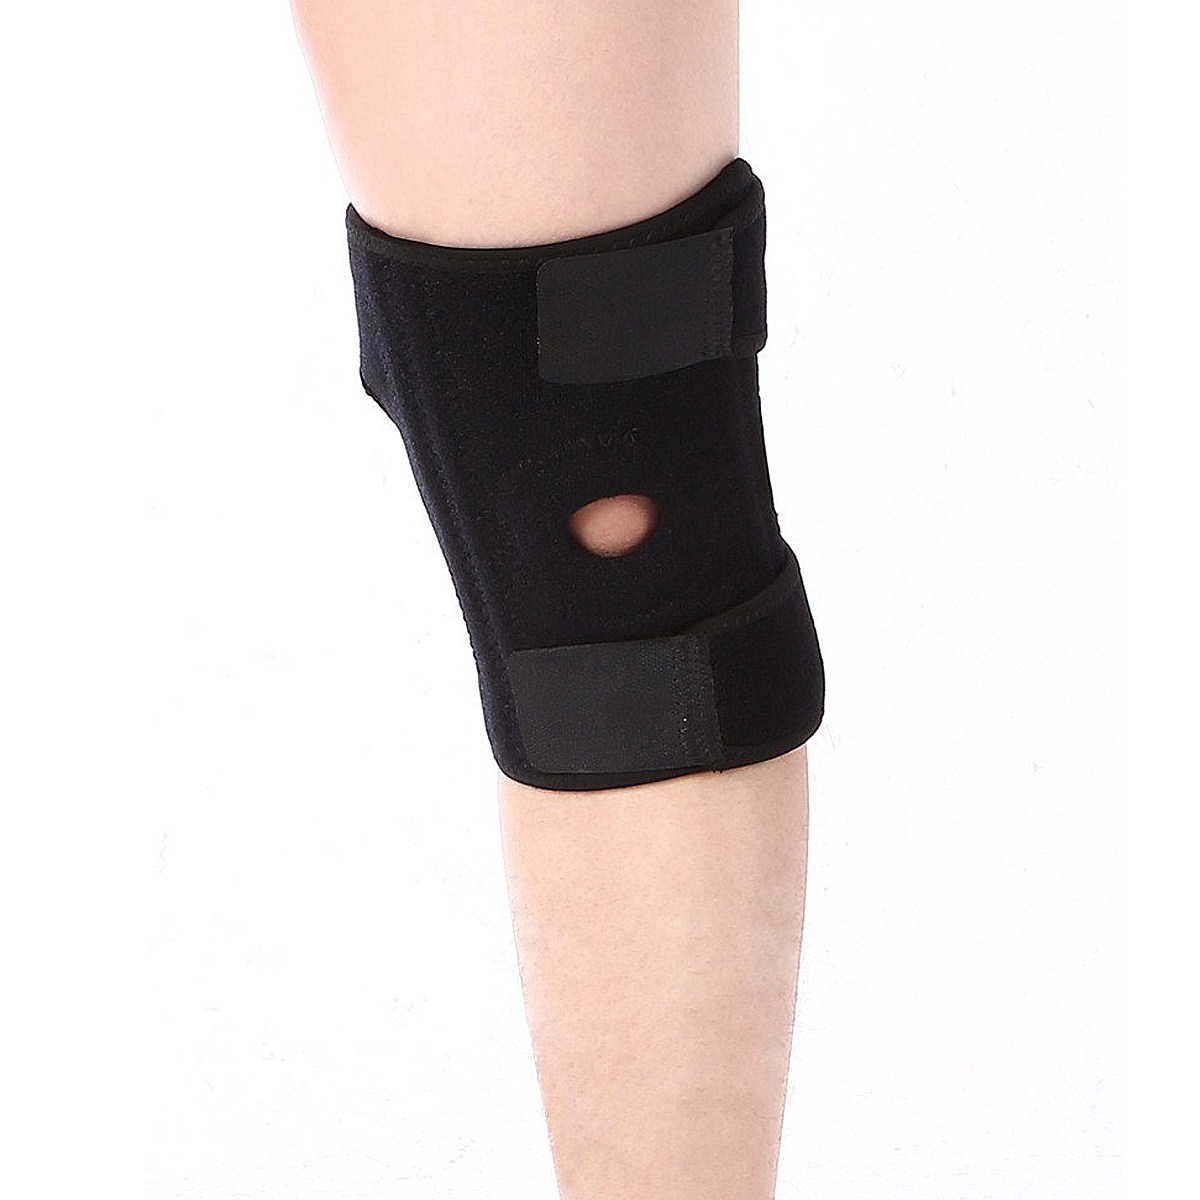 NEW Safurance Outdoor Sports Leg Knee Patella Compression Protector Brace Support Pad Sleeve Workplace Safety Kneepad mcdavid 6300 dual compression knee sleeve